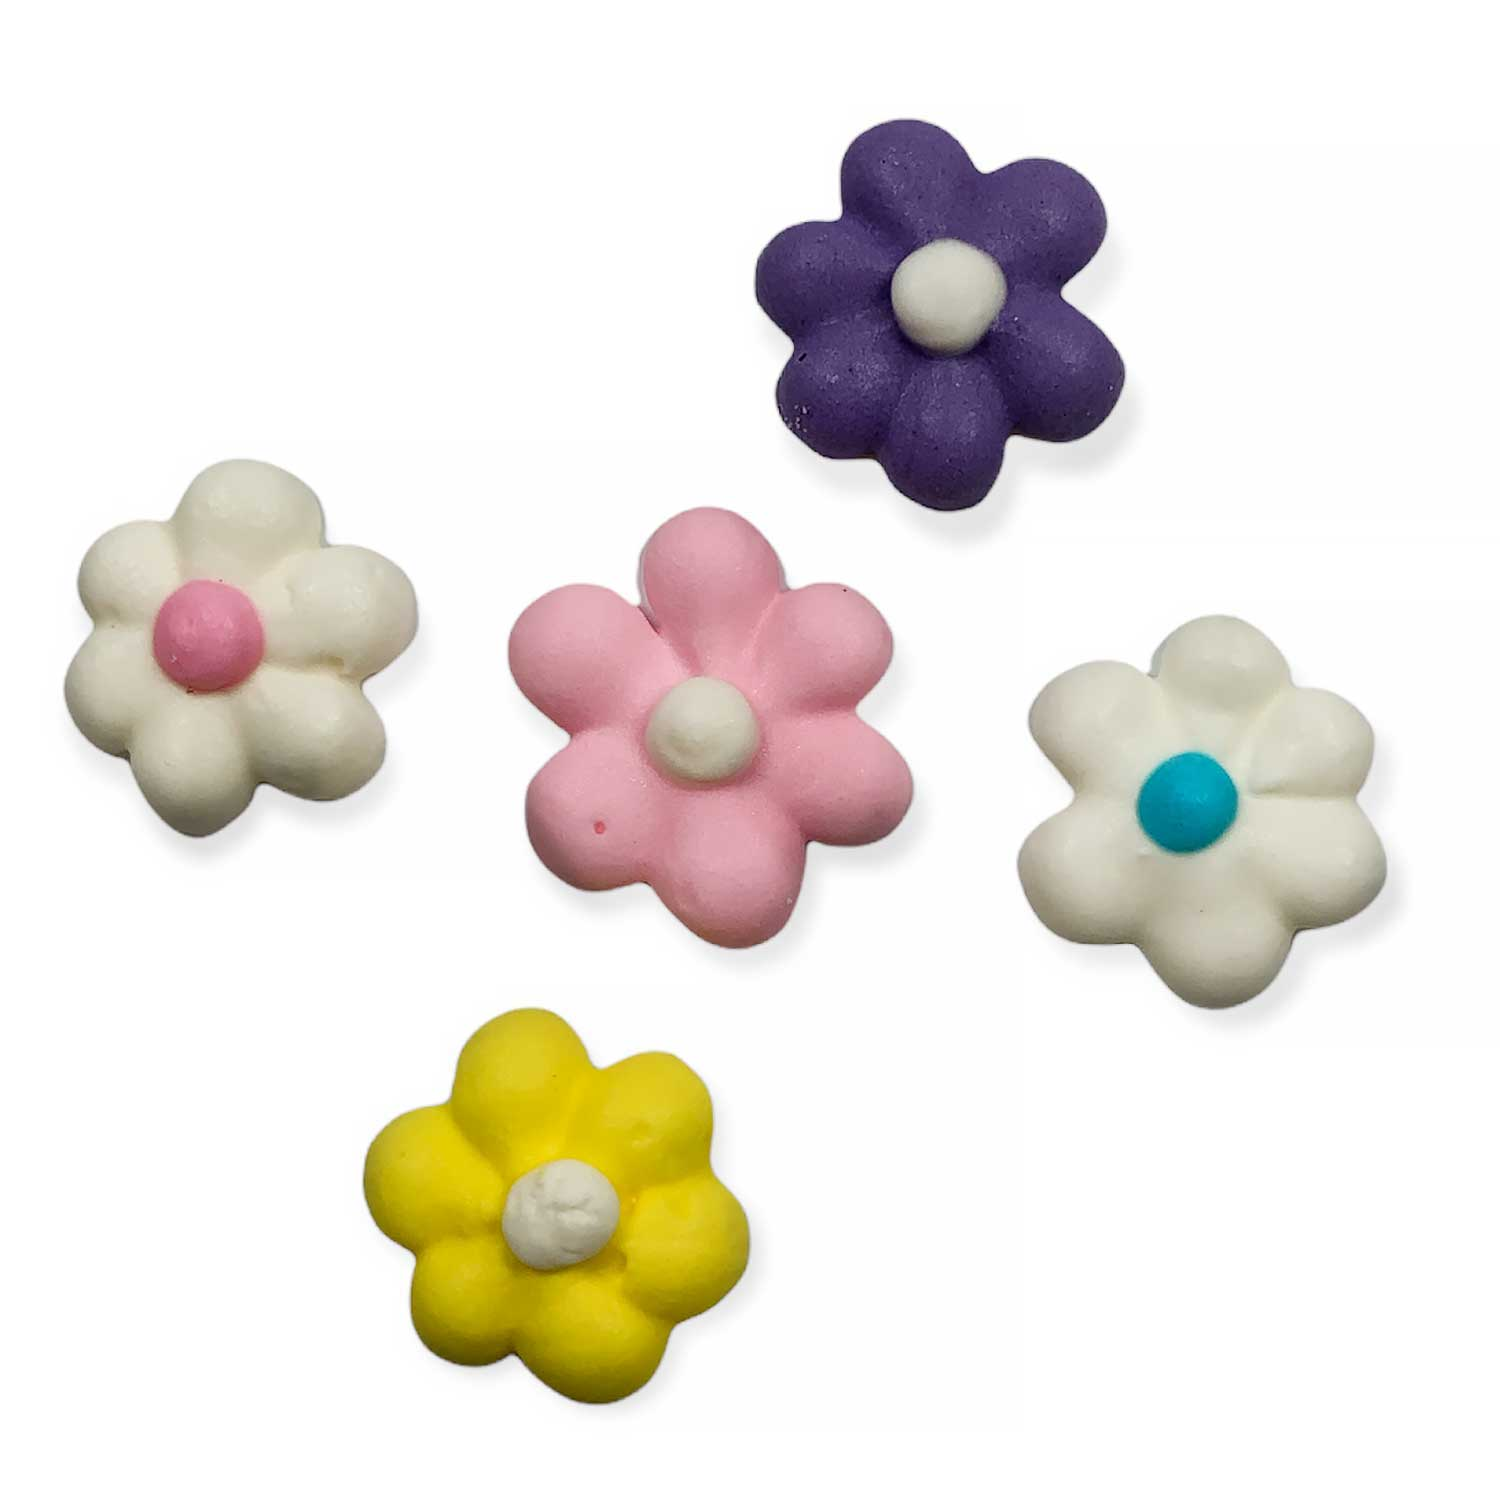 Icing Layons - Pastel Butter Flower Assortment